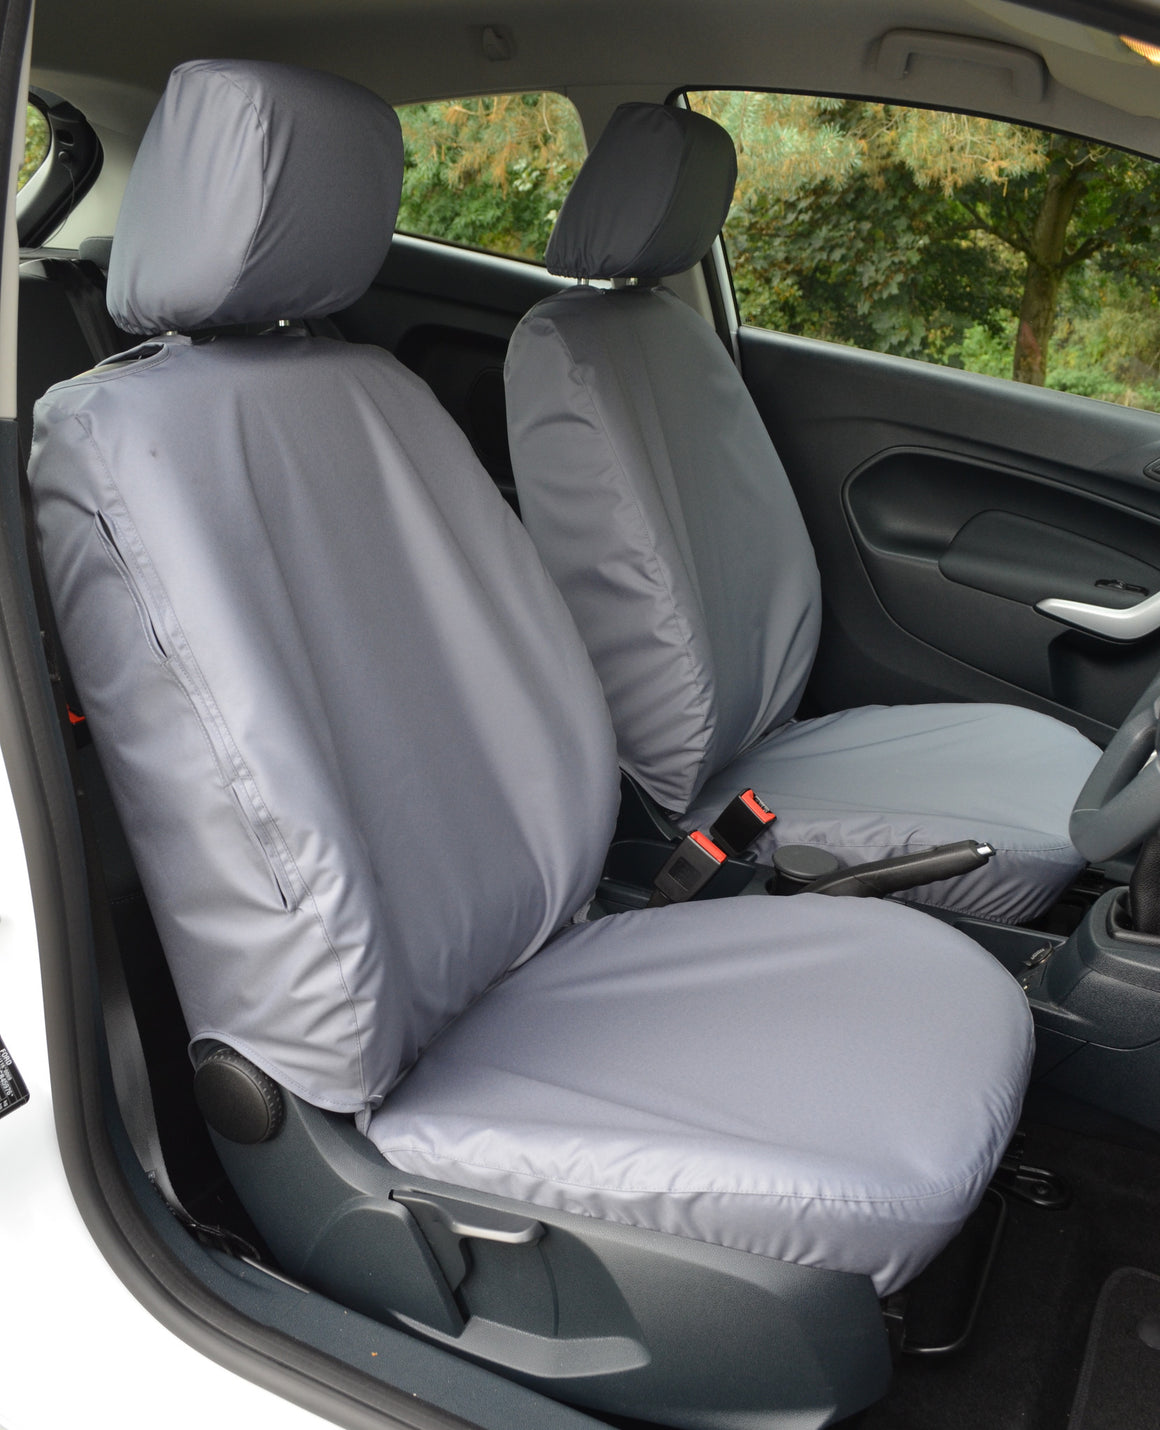 Ford Fiesta Van 2008 - 2018 Tailored Seat Covers